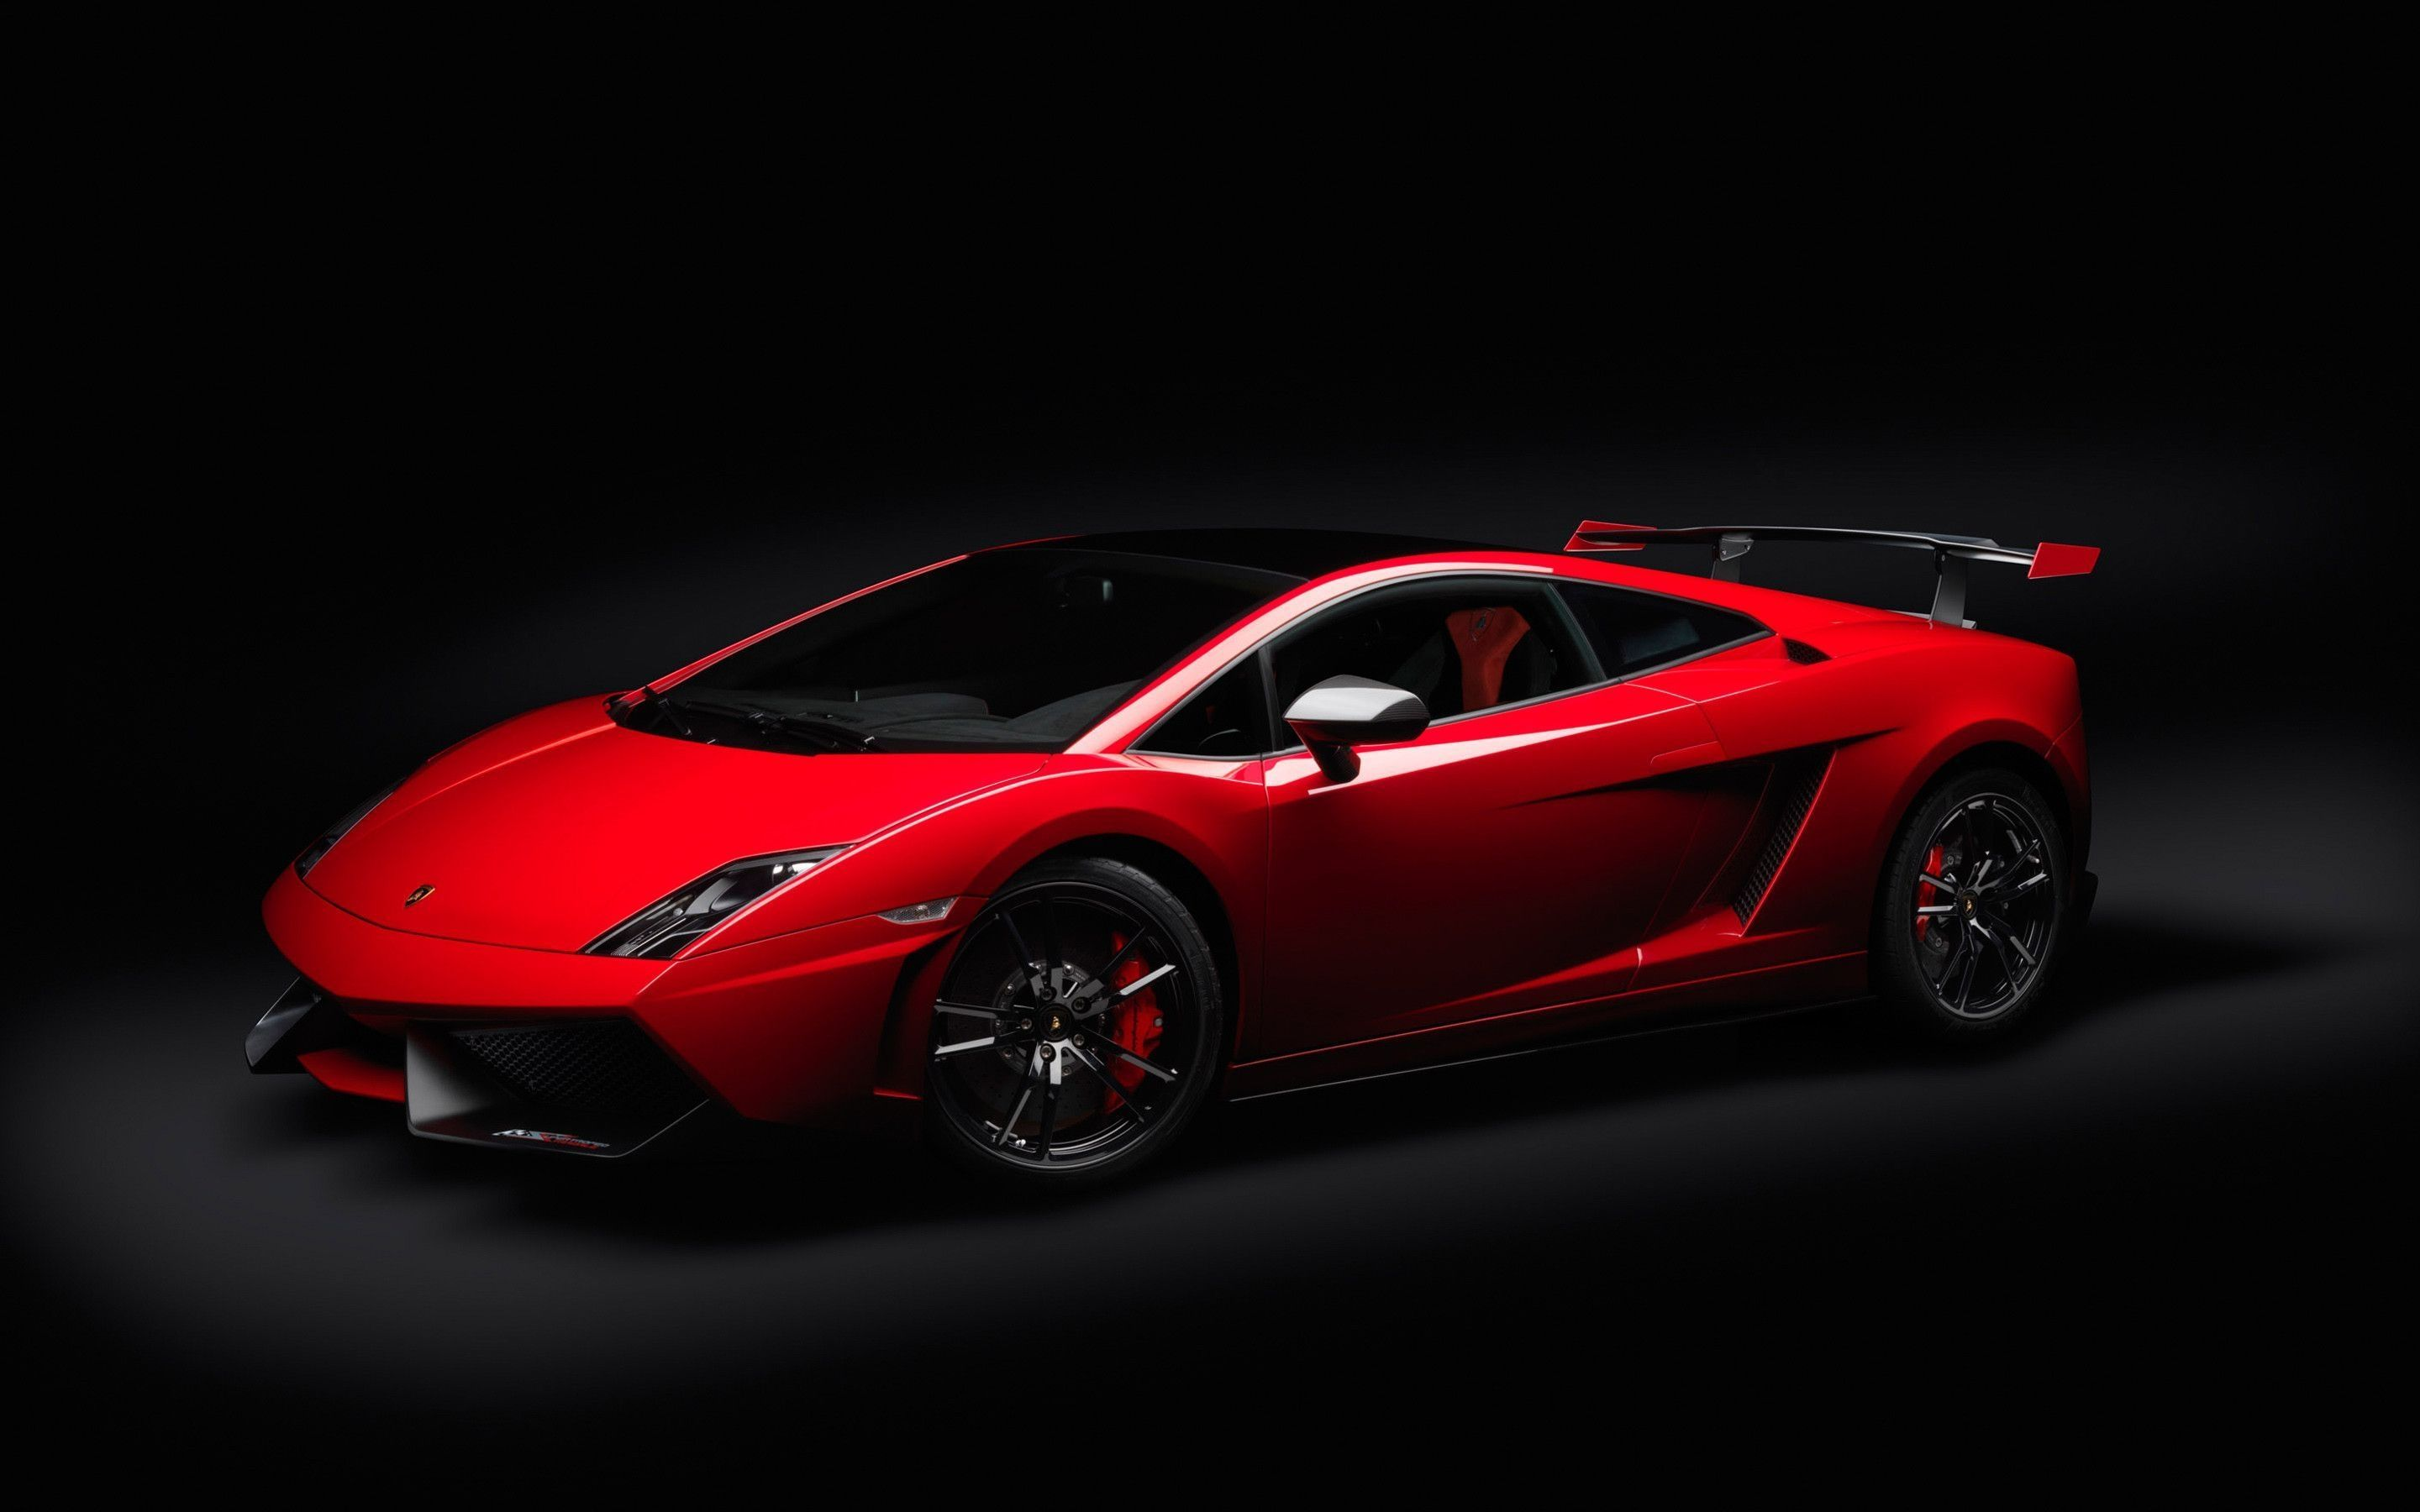 Charmant Hd Lamborghini Gallardo Wallpapers | HD Wallpapers | Pinterest | Lamborghini  Gallardo, Lamborghini And Hd Wallpaper